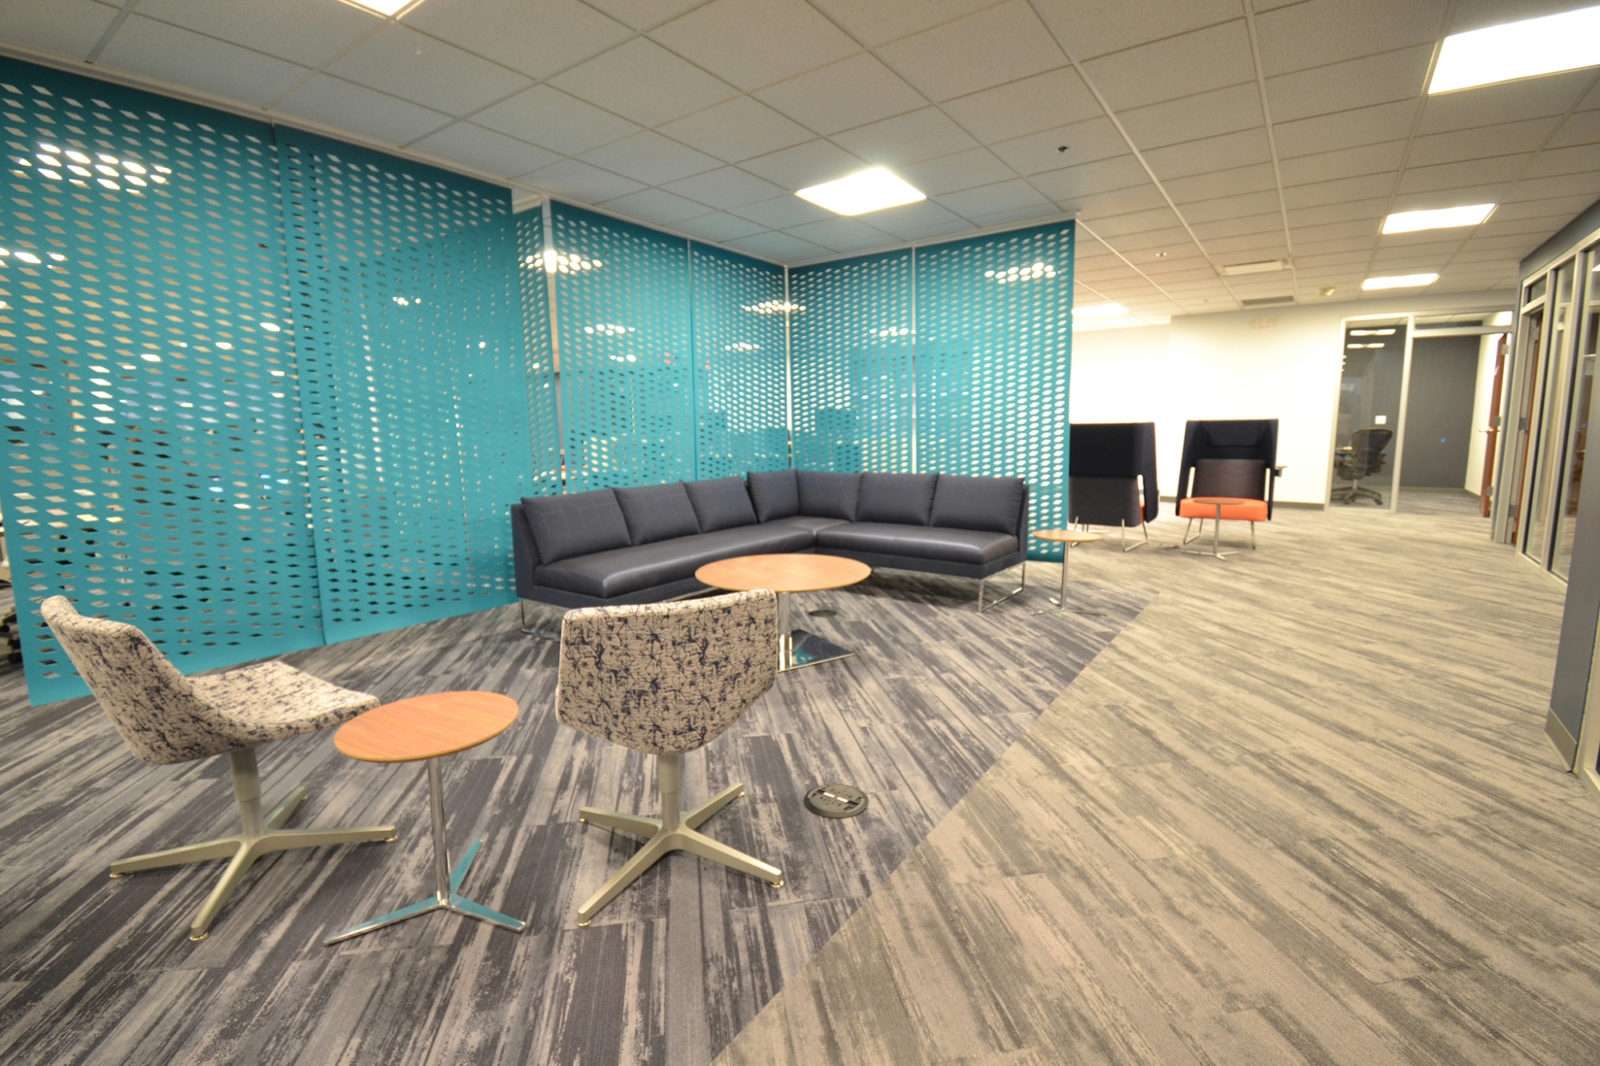 Prof. Services Firm Project Highlight: lounge area and partition walls